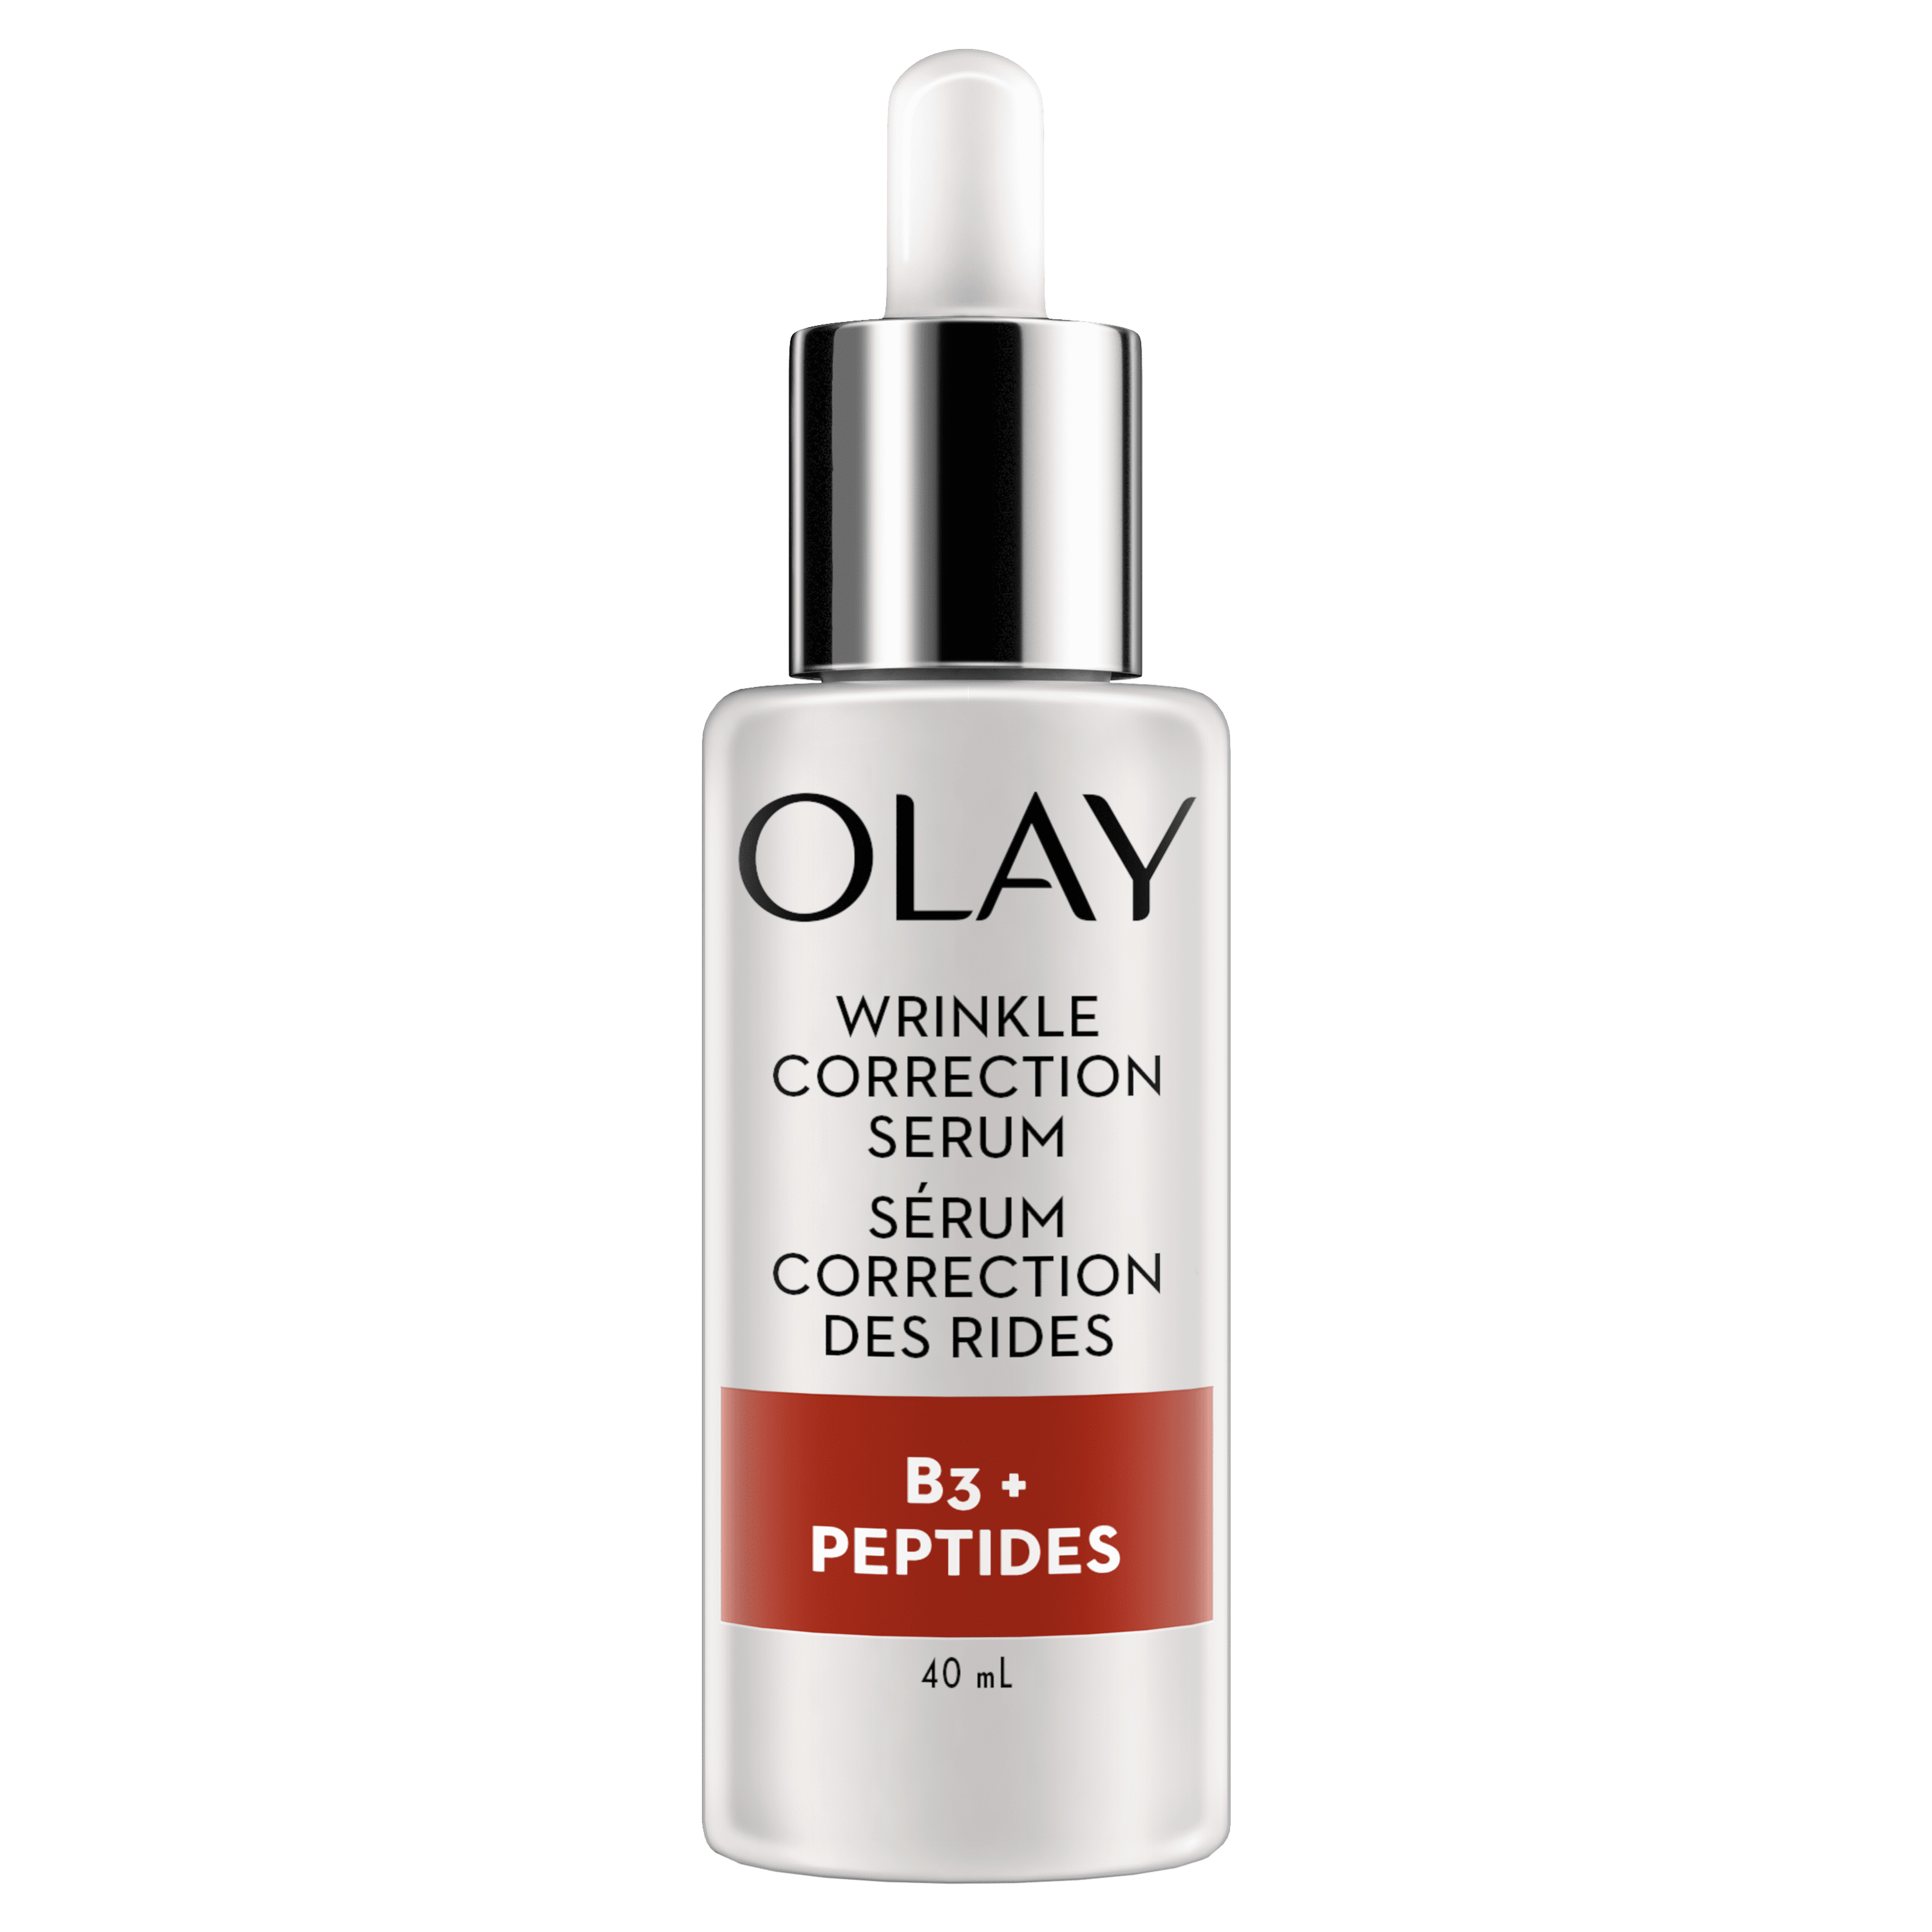 Olay Wrinkle Correction Serum with Vitamin B3plus Peptides 40 mL